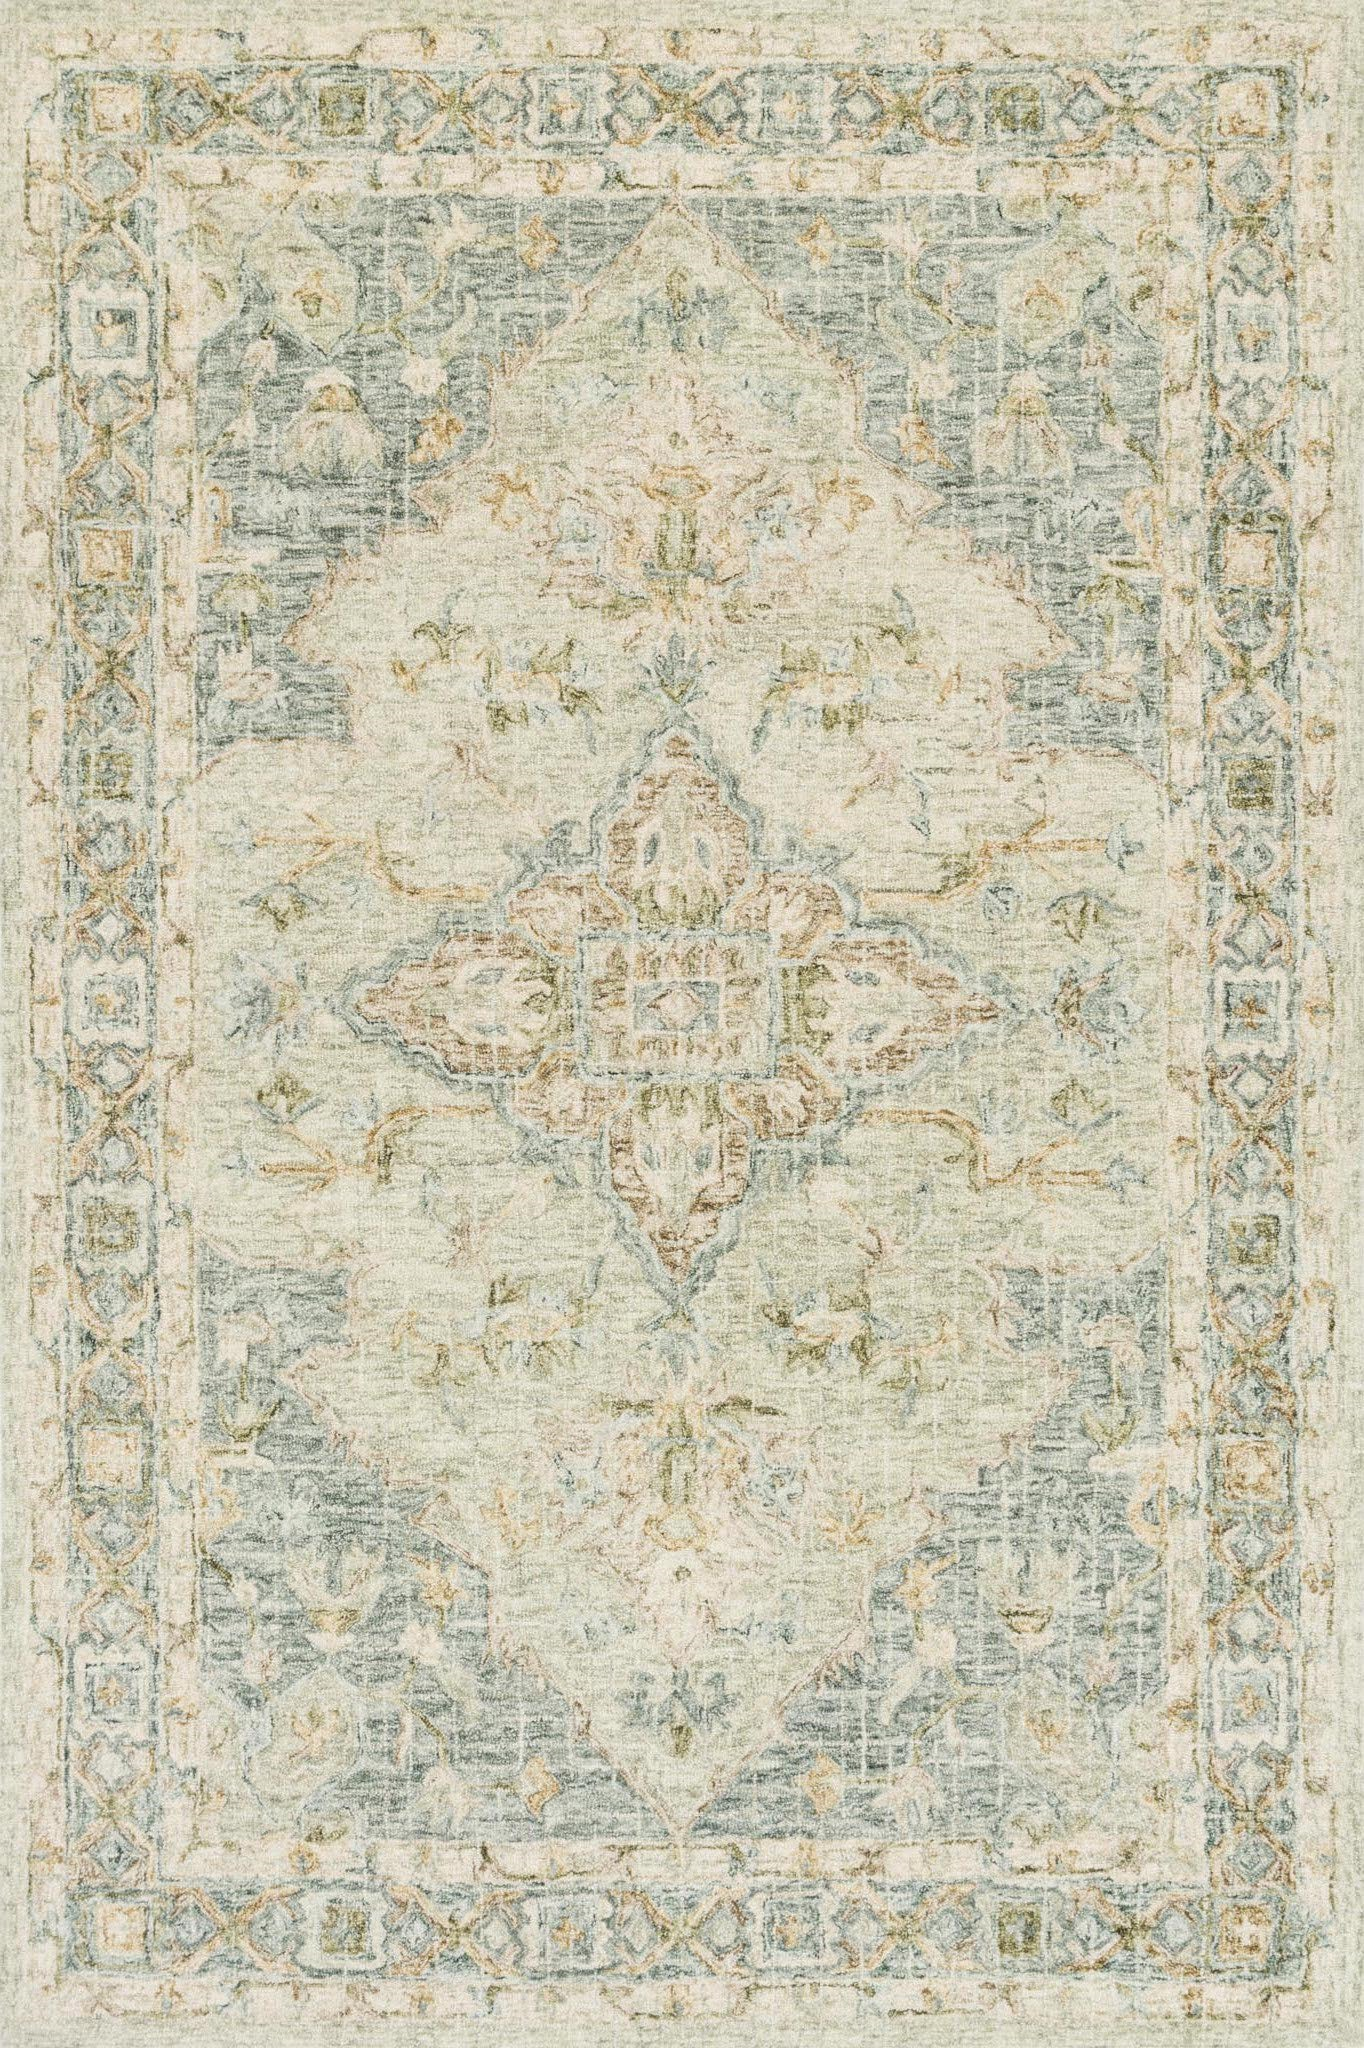 Loloi Julian JI-07 Seafoam Green/Spa Area Rug main image